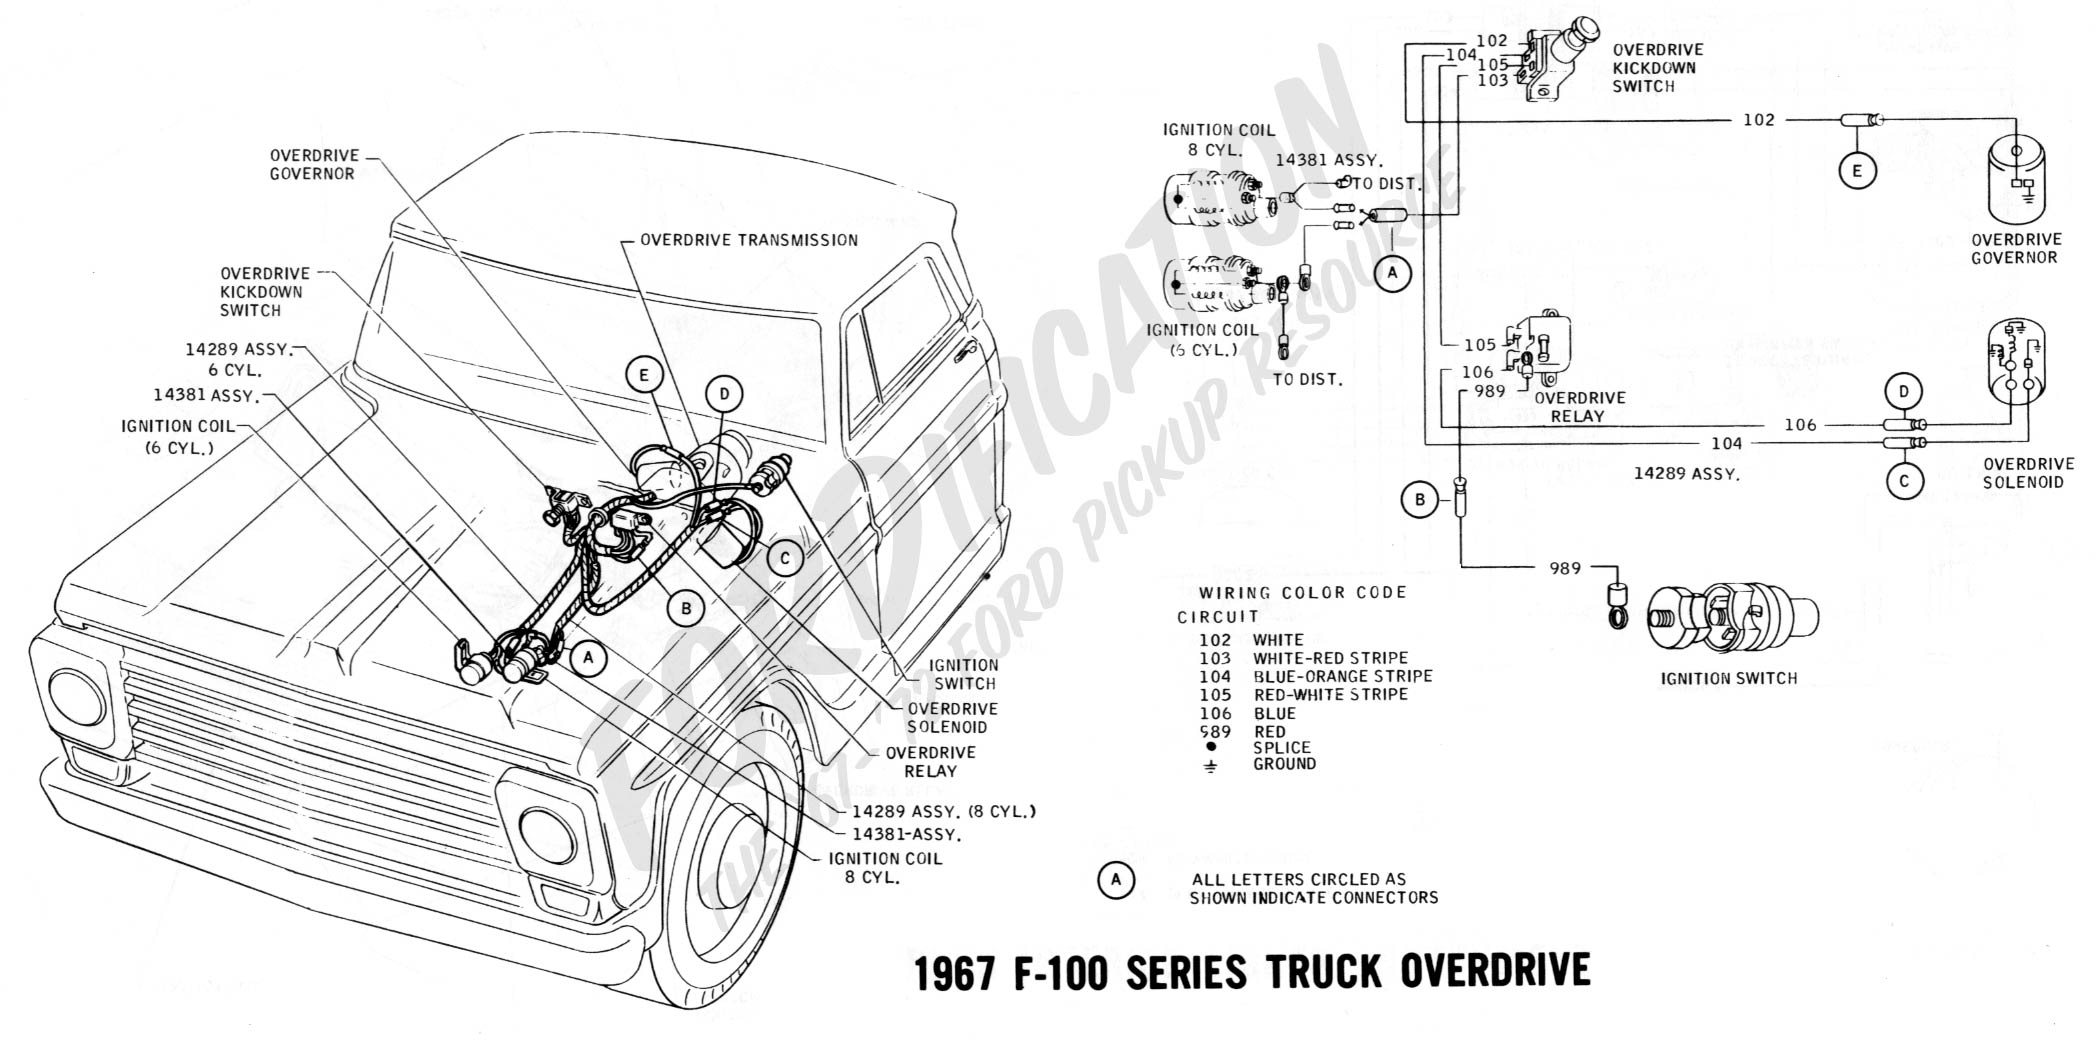 1967 Chevy C10 Fuse Box Archive Of Automotive Wiring Diagram 1973 1968 F100 Data Schema Rh Site De Joueurs Com 67